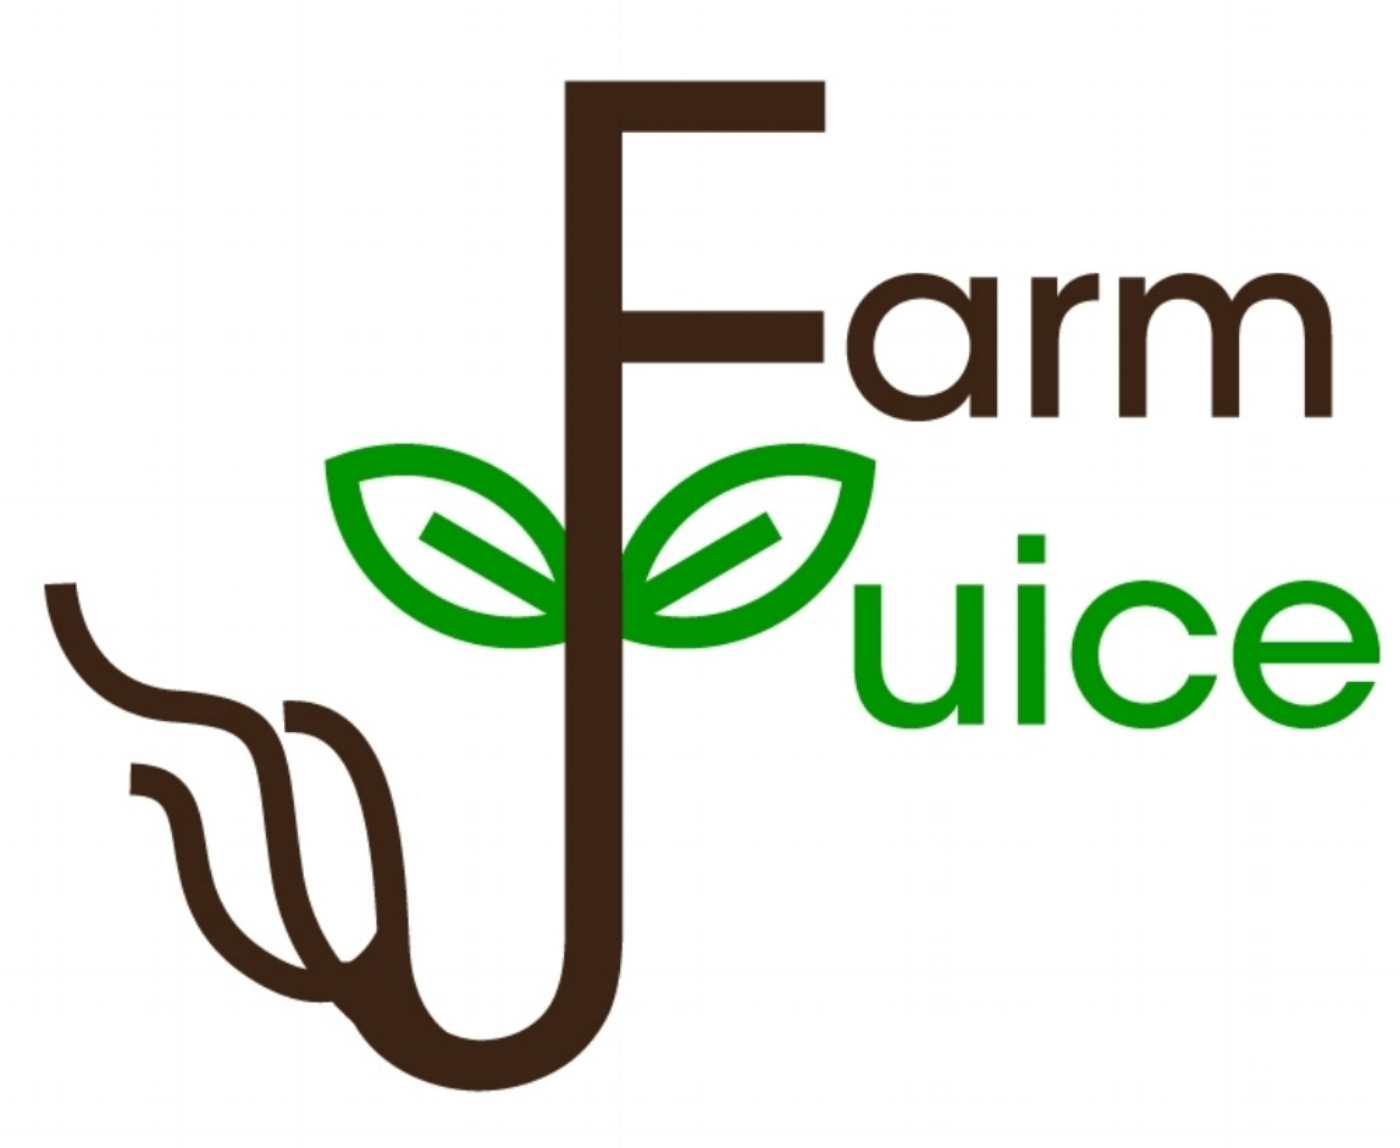 Farm Juices